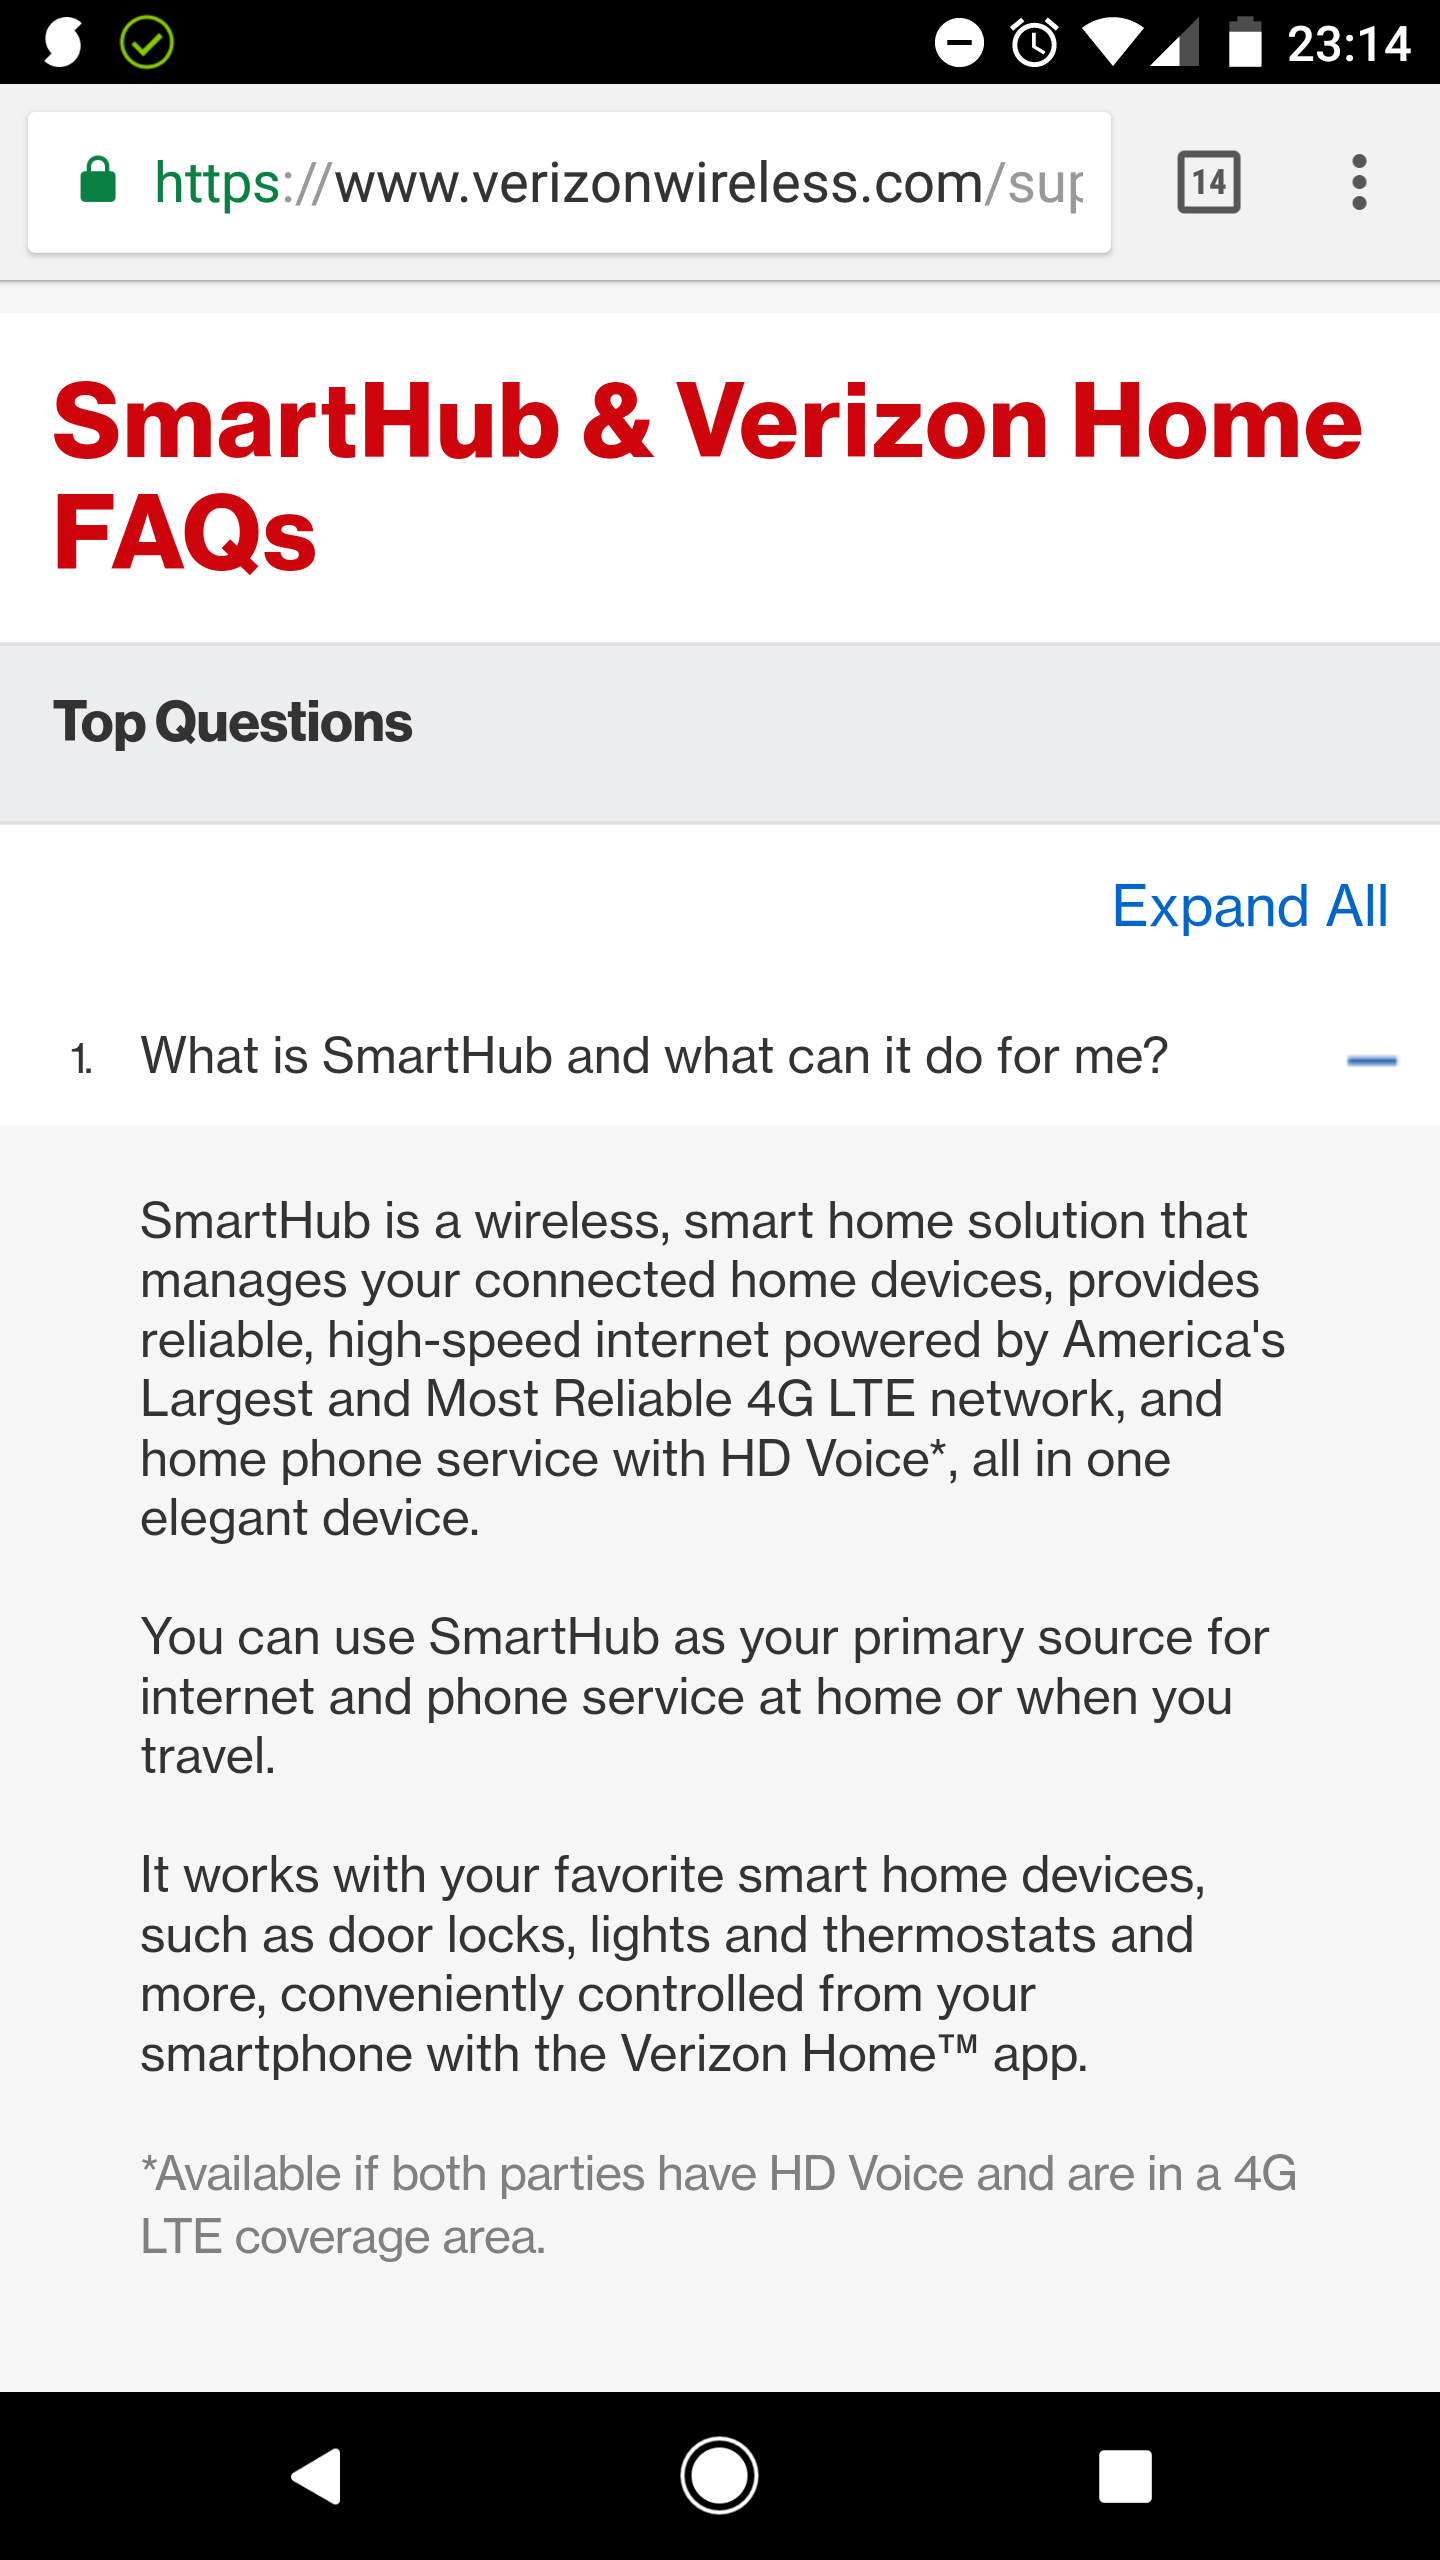 Verizon SmartHub is a 4G LTE router for your smart home